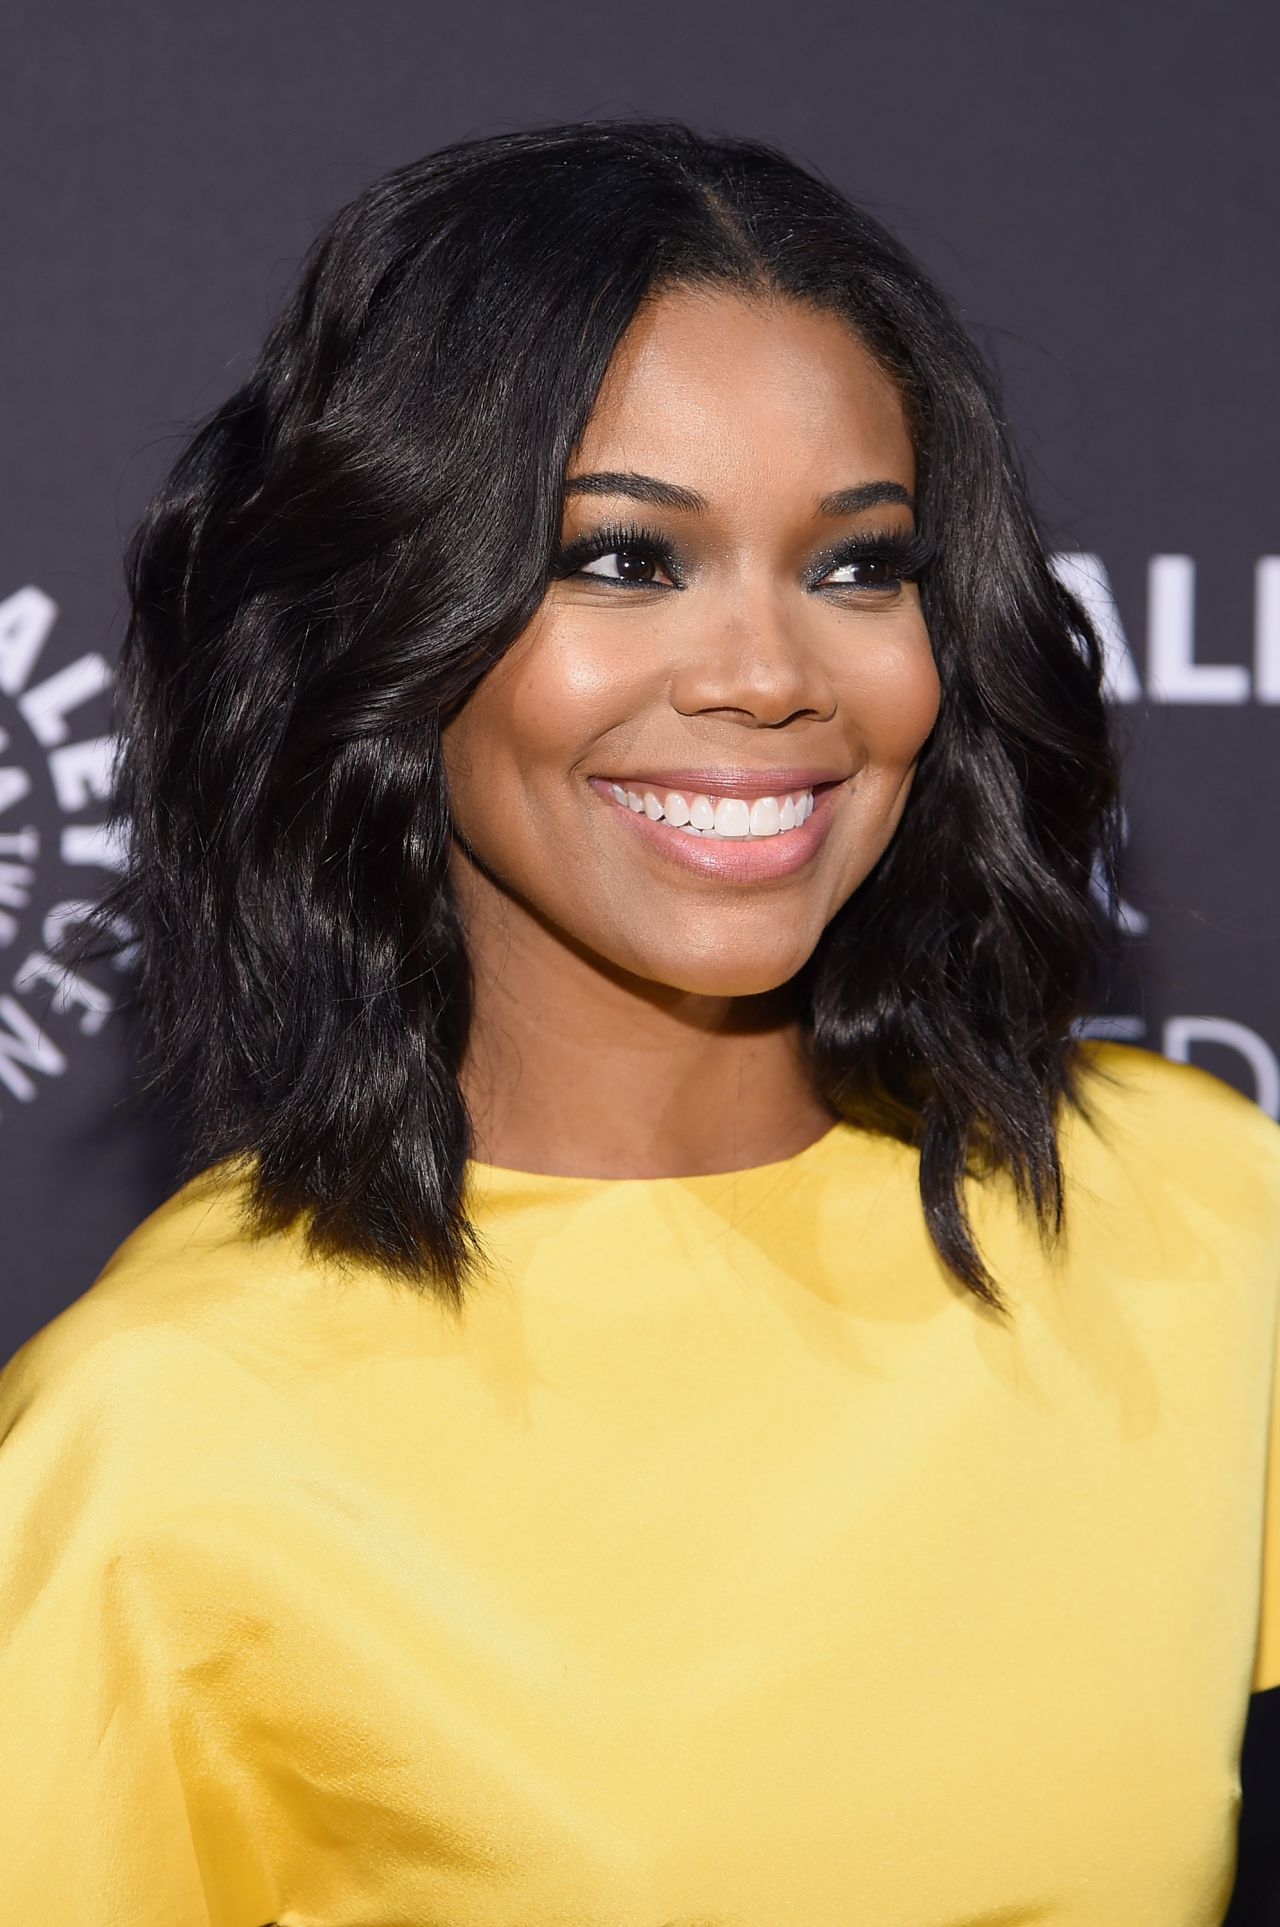 Gabrielle Union Covers Hype Hair Magazine S March 2015 Issue: Tribute To African-American Achievements